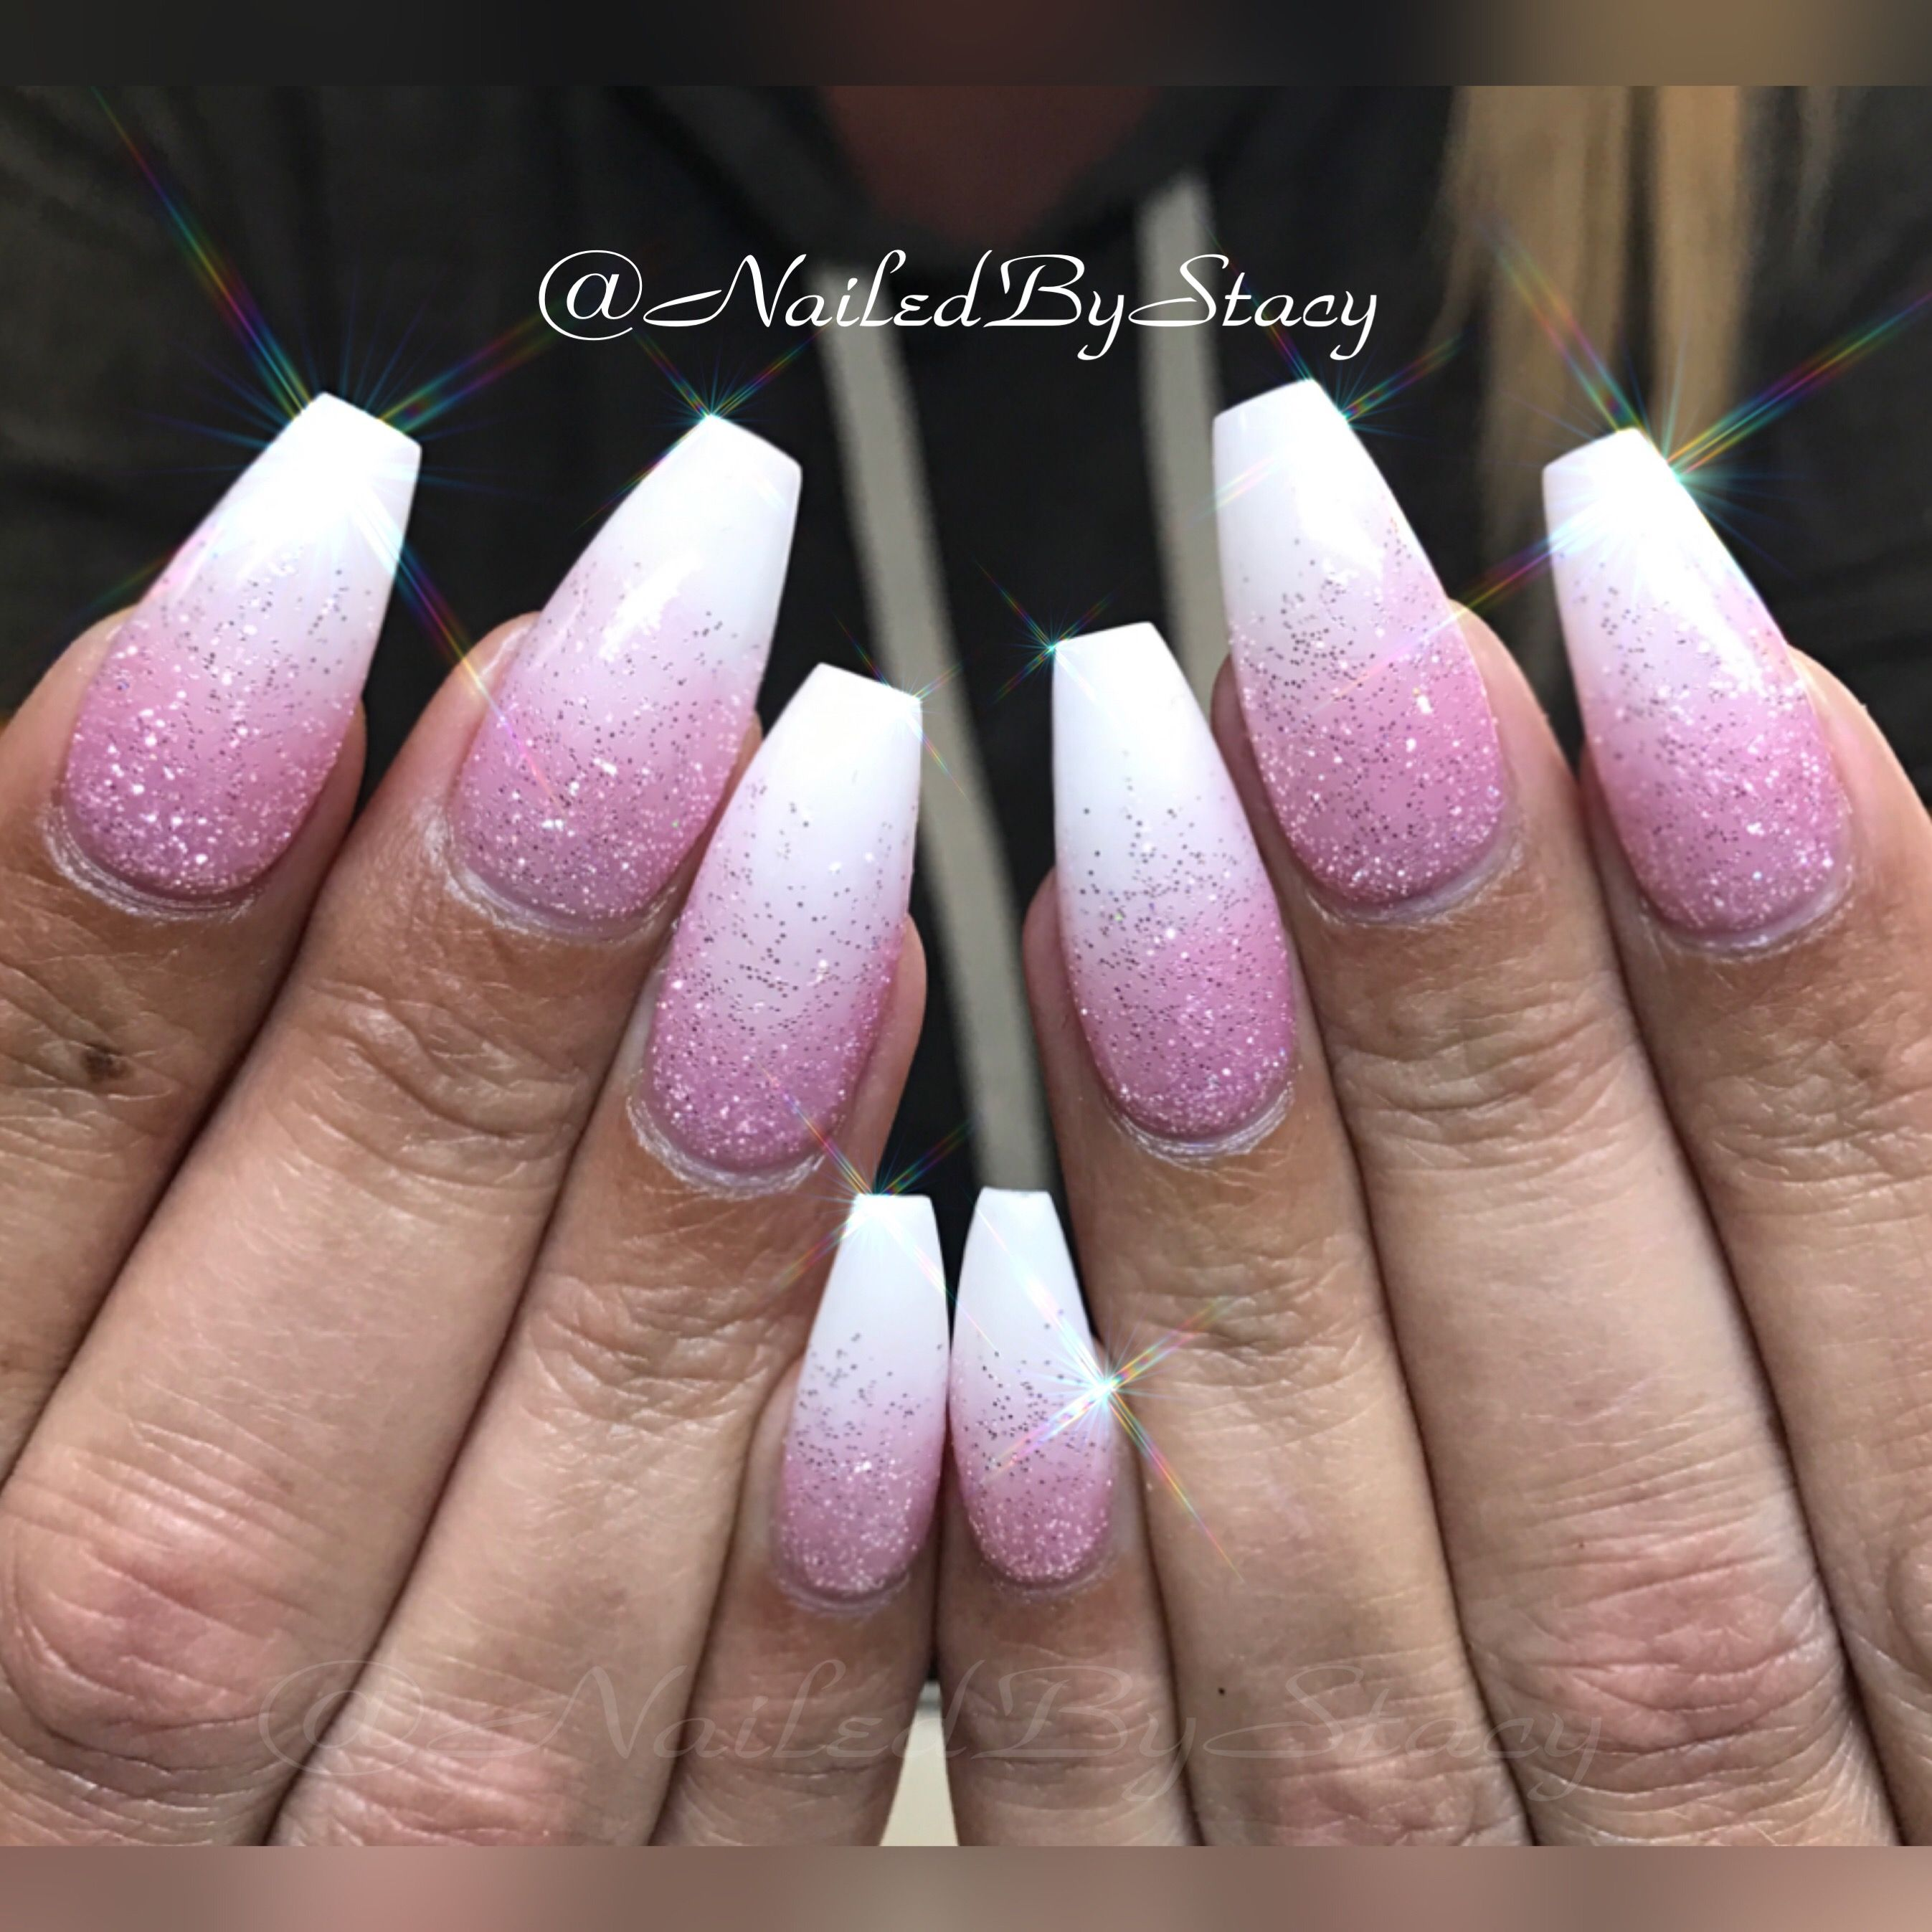 Ombré Baby Boomer Ballerina Nails | NAILED BY STACY | Pinterest